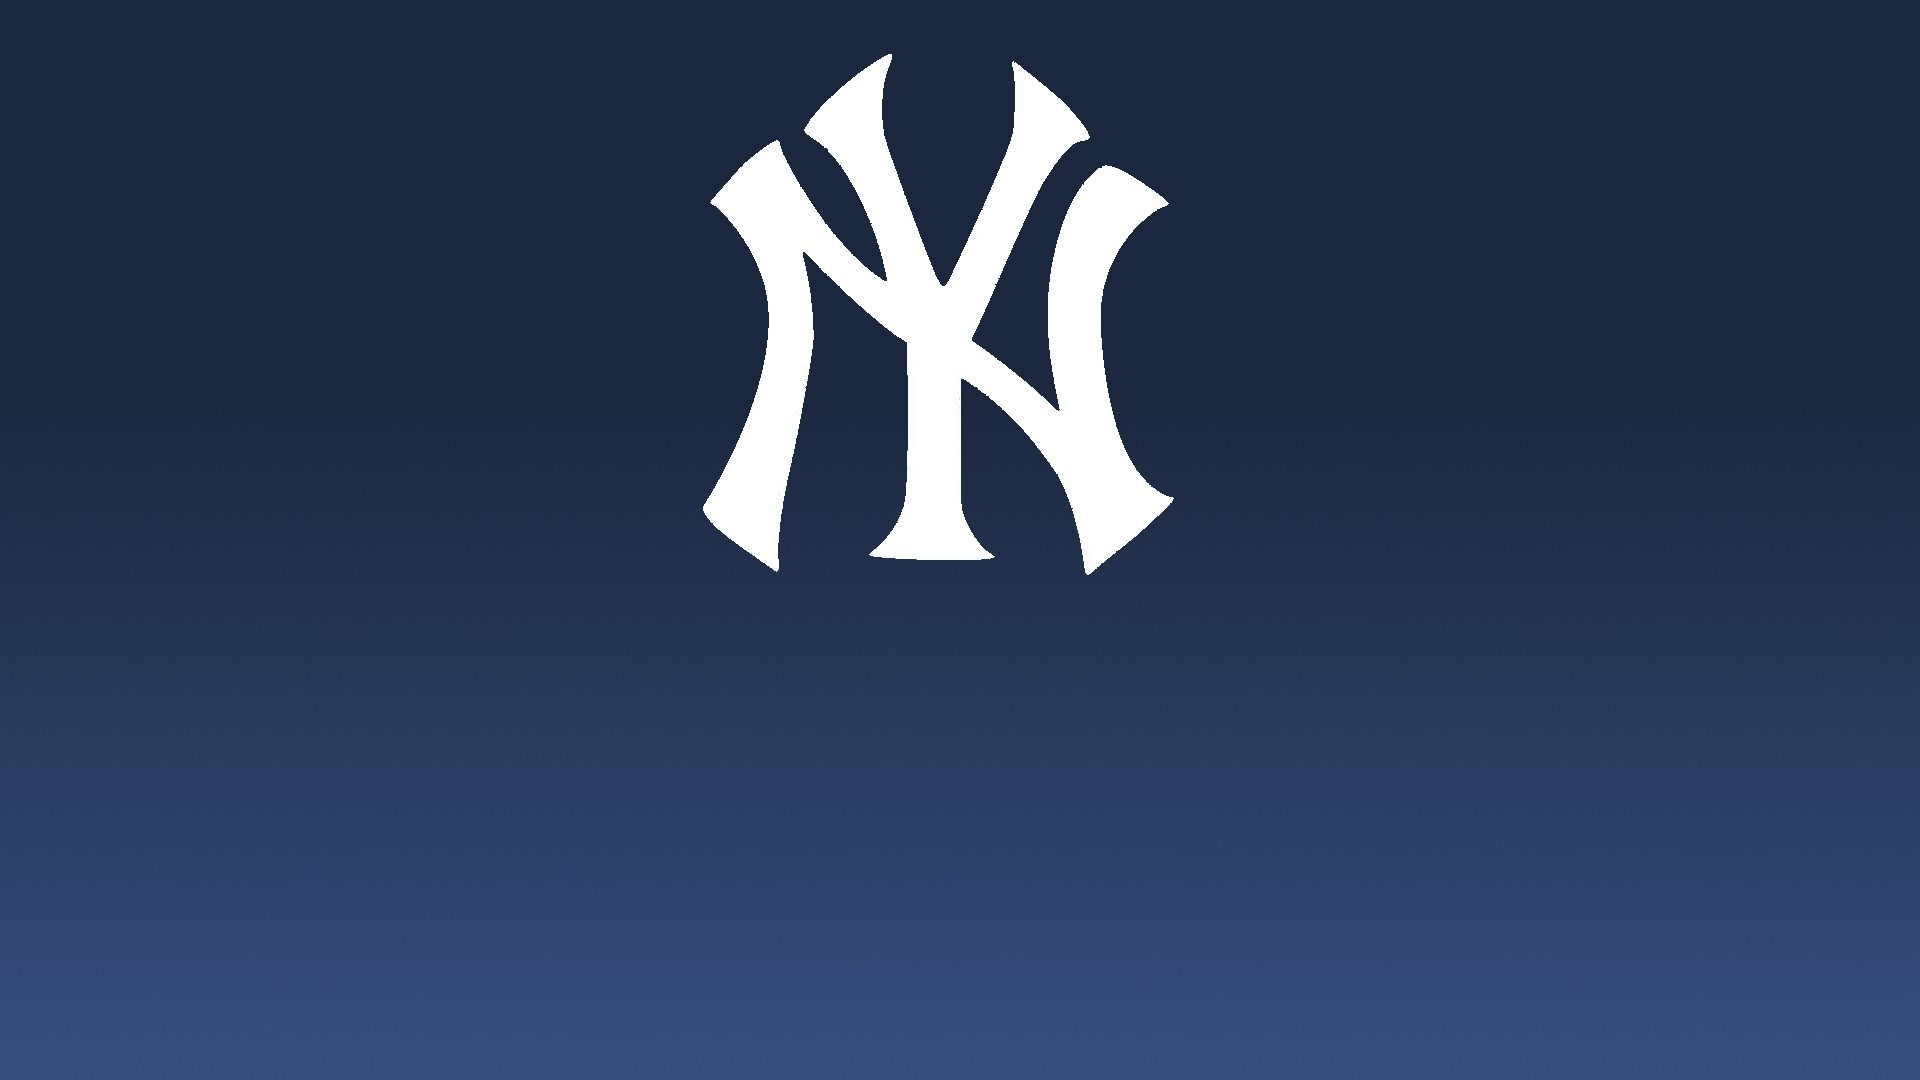 1920x1080 free screensaver wallpapers for new york yankees, 70 kB - Greydon Robertson